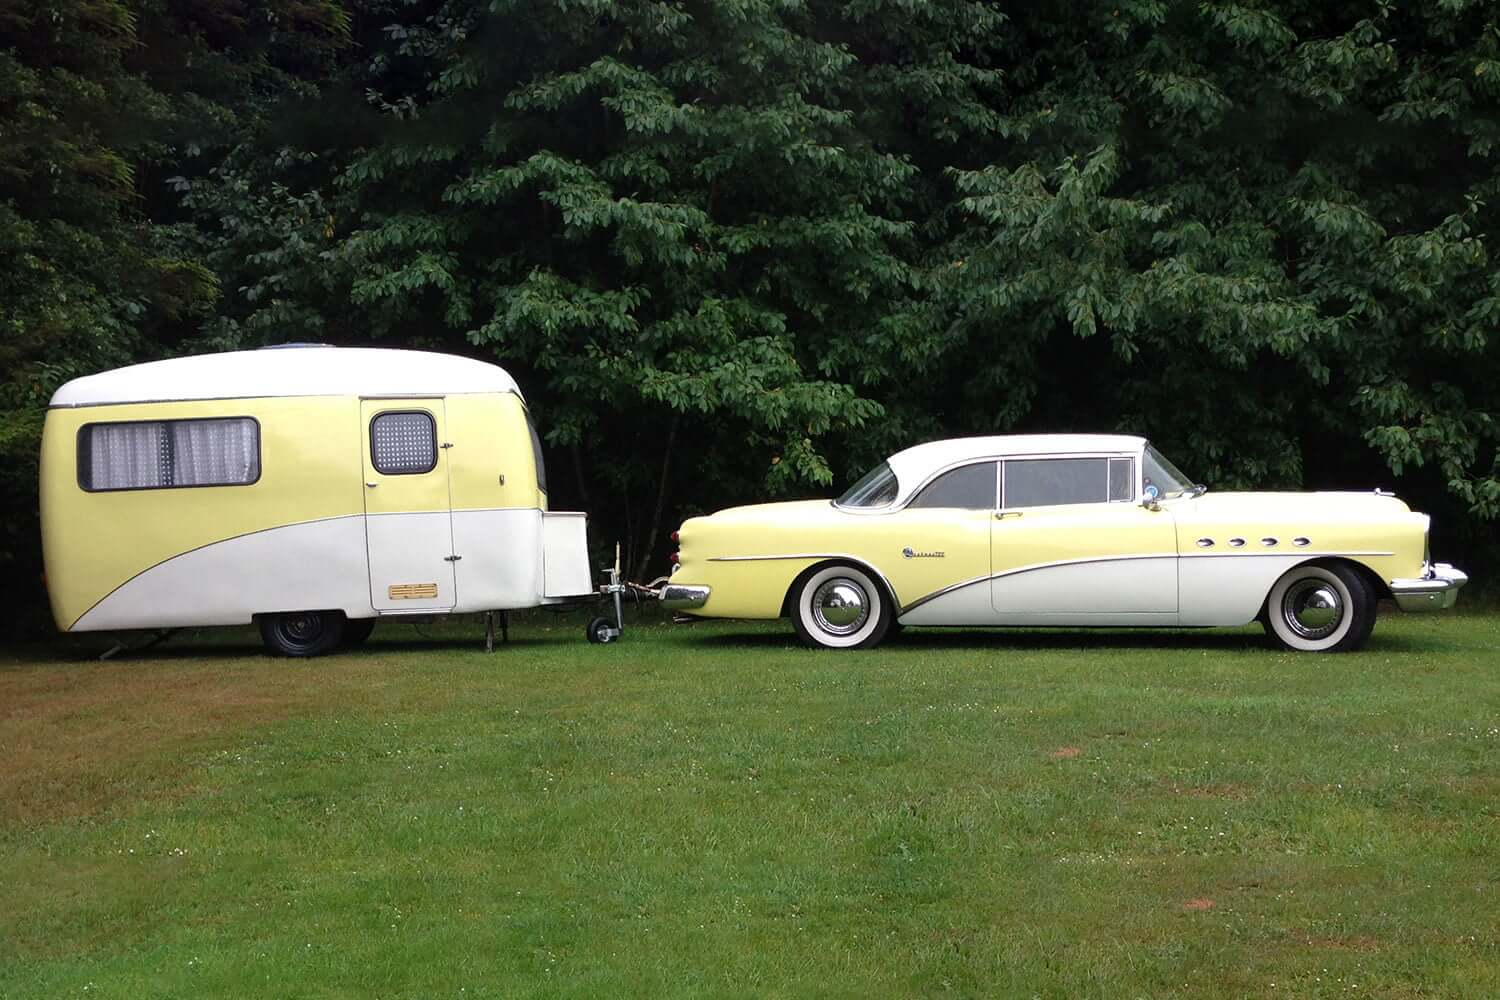 Vintage Trailers Popular Trend Among All Generations